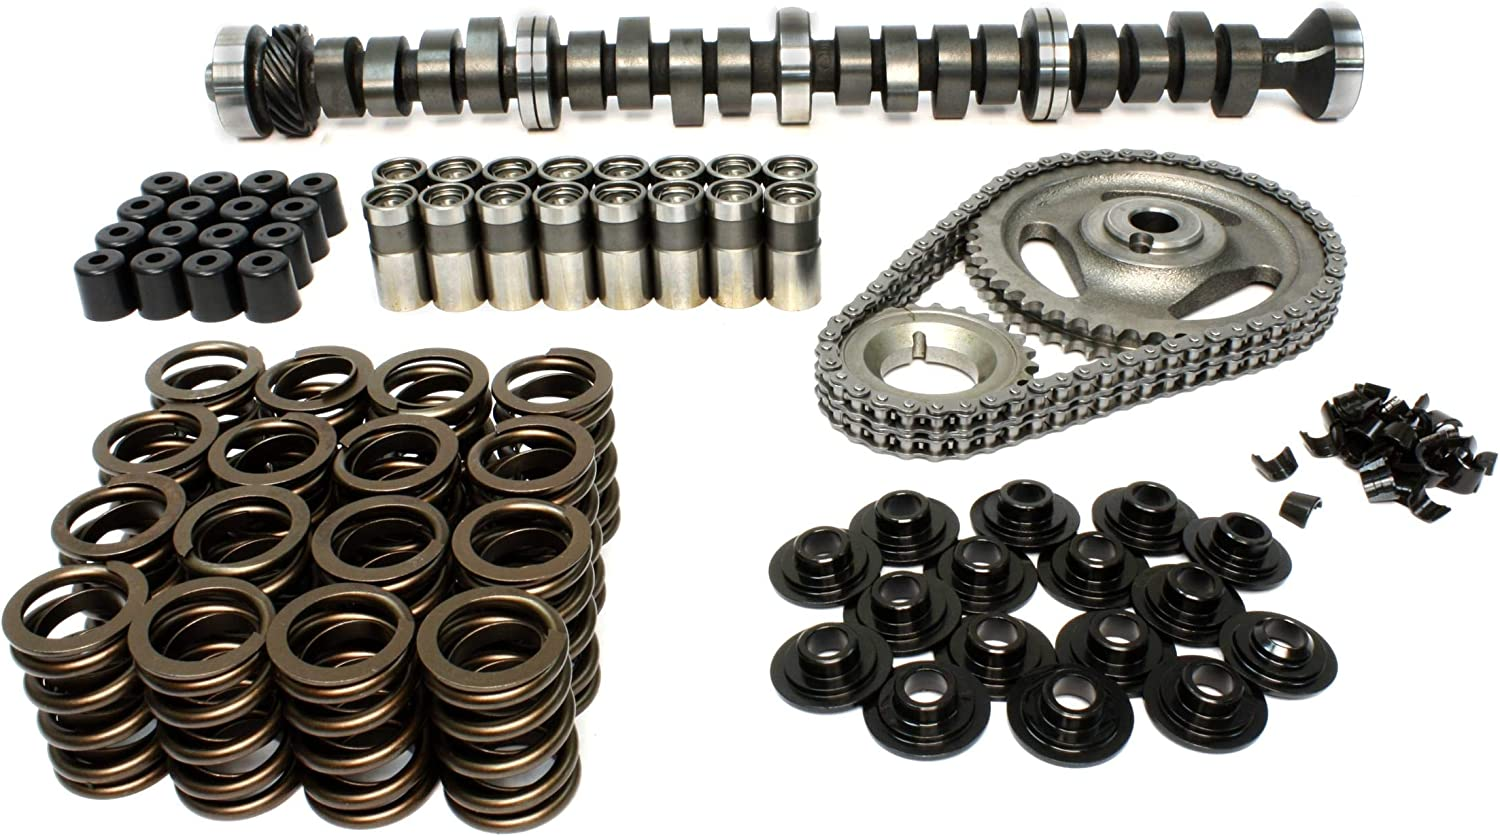 COMP Cams CL33-234-4 Xtreme Energy 212//218 Hydraulic Flat Cam and Lifter Kit for Ford 352-428